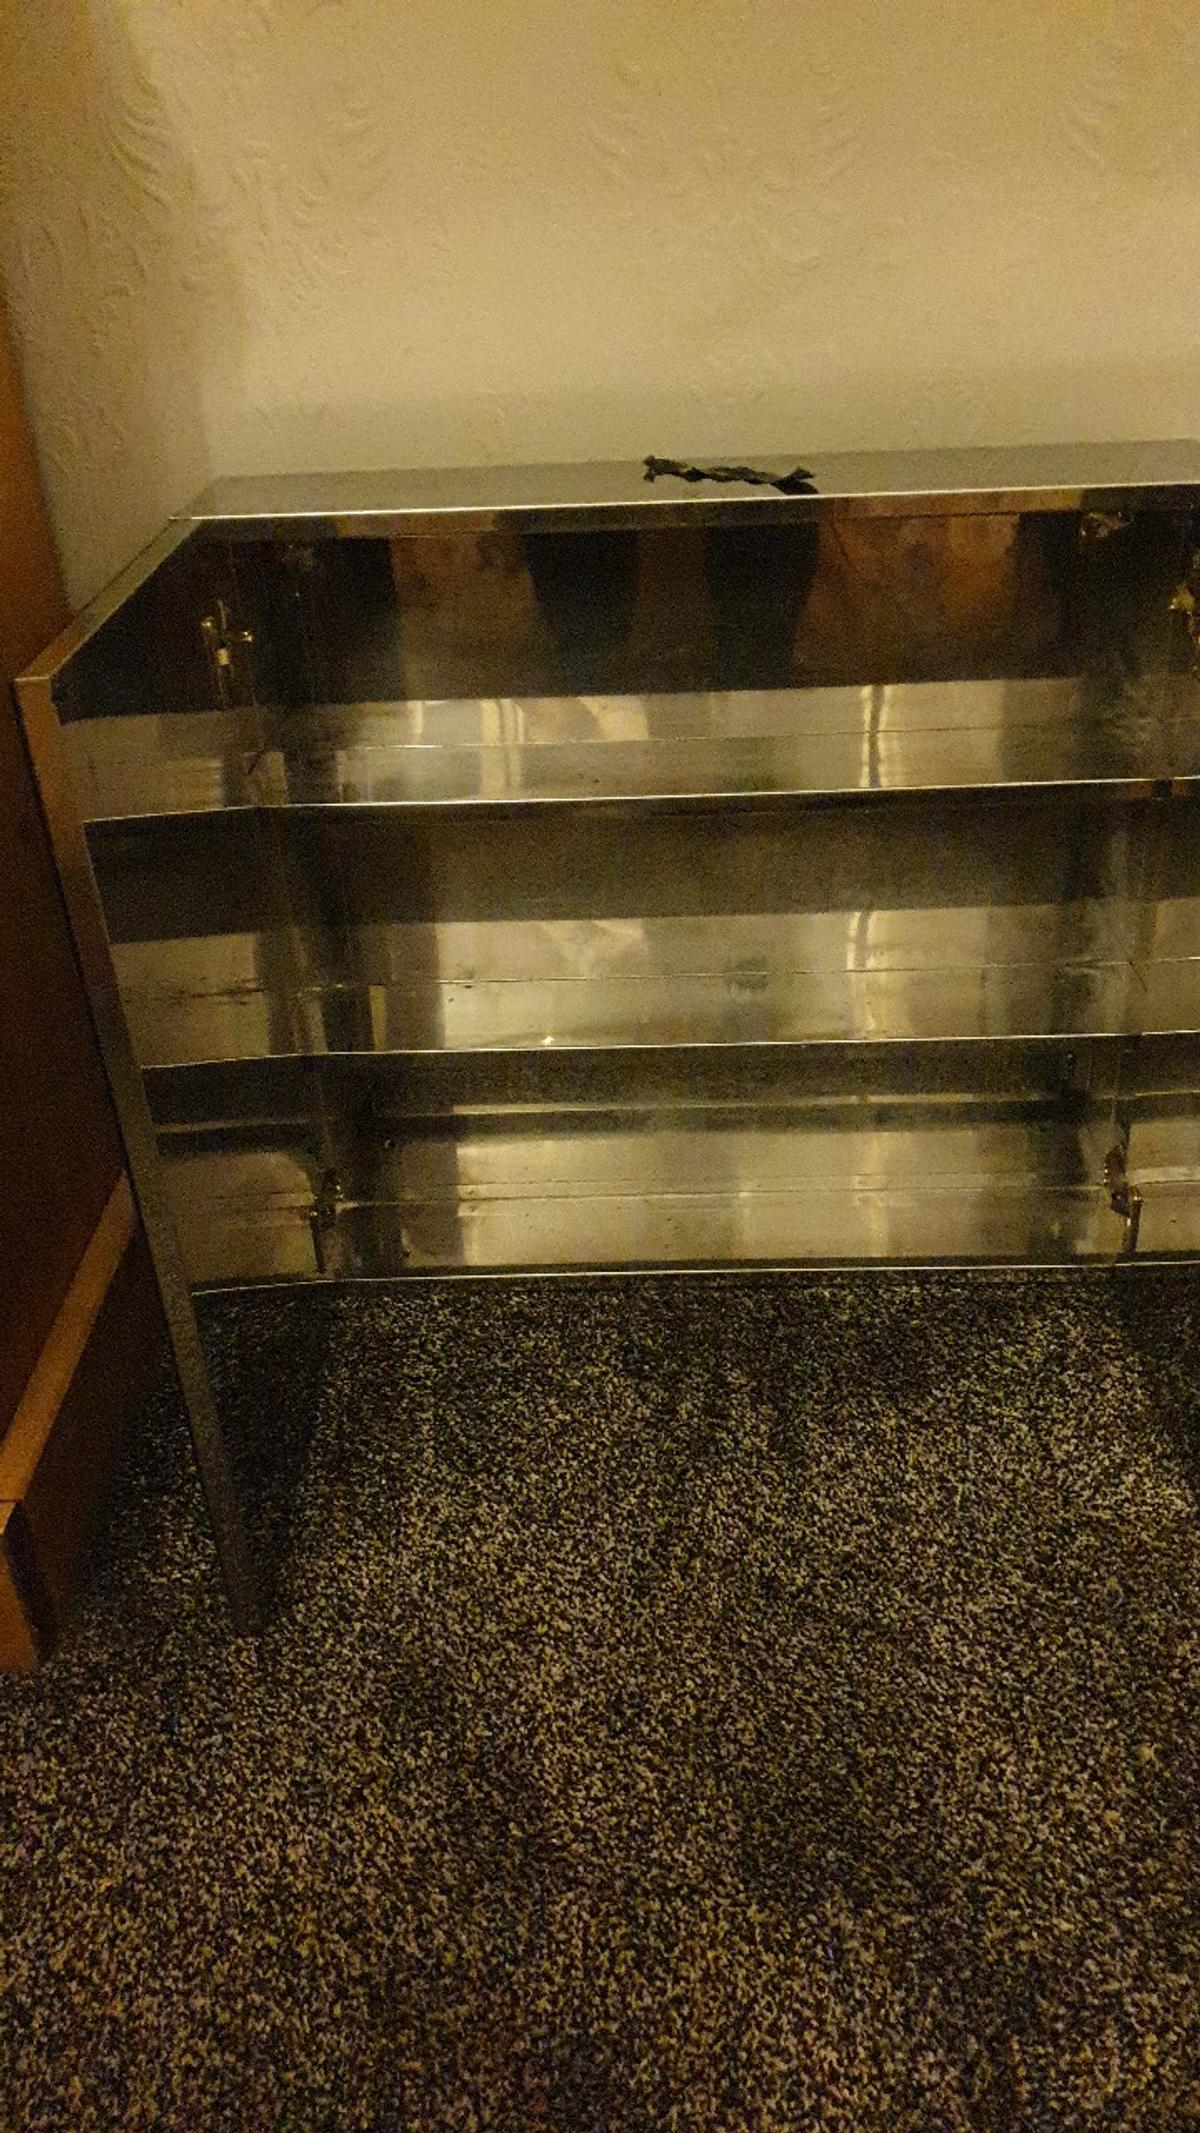 stainless steel 3 shelf bath cabinet . good condition with mirrors. buyer collects , no offers no time wasters a good buy.